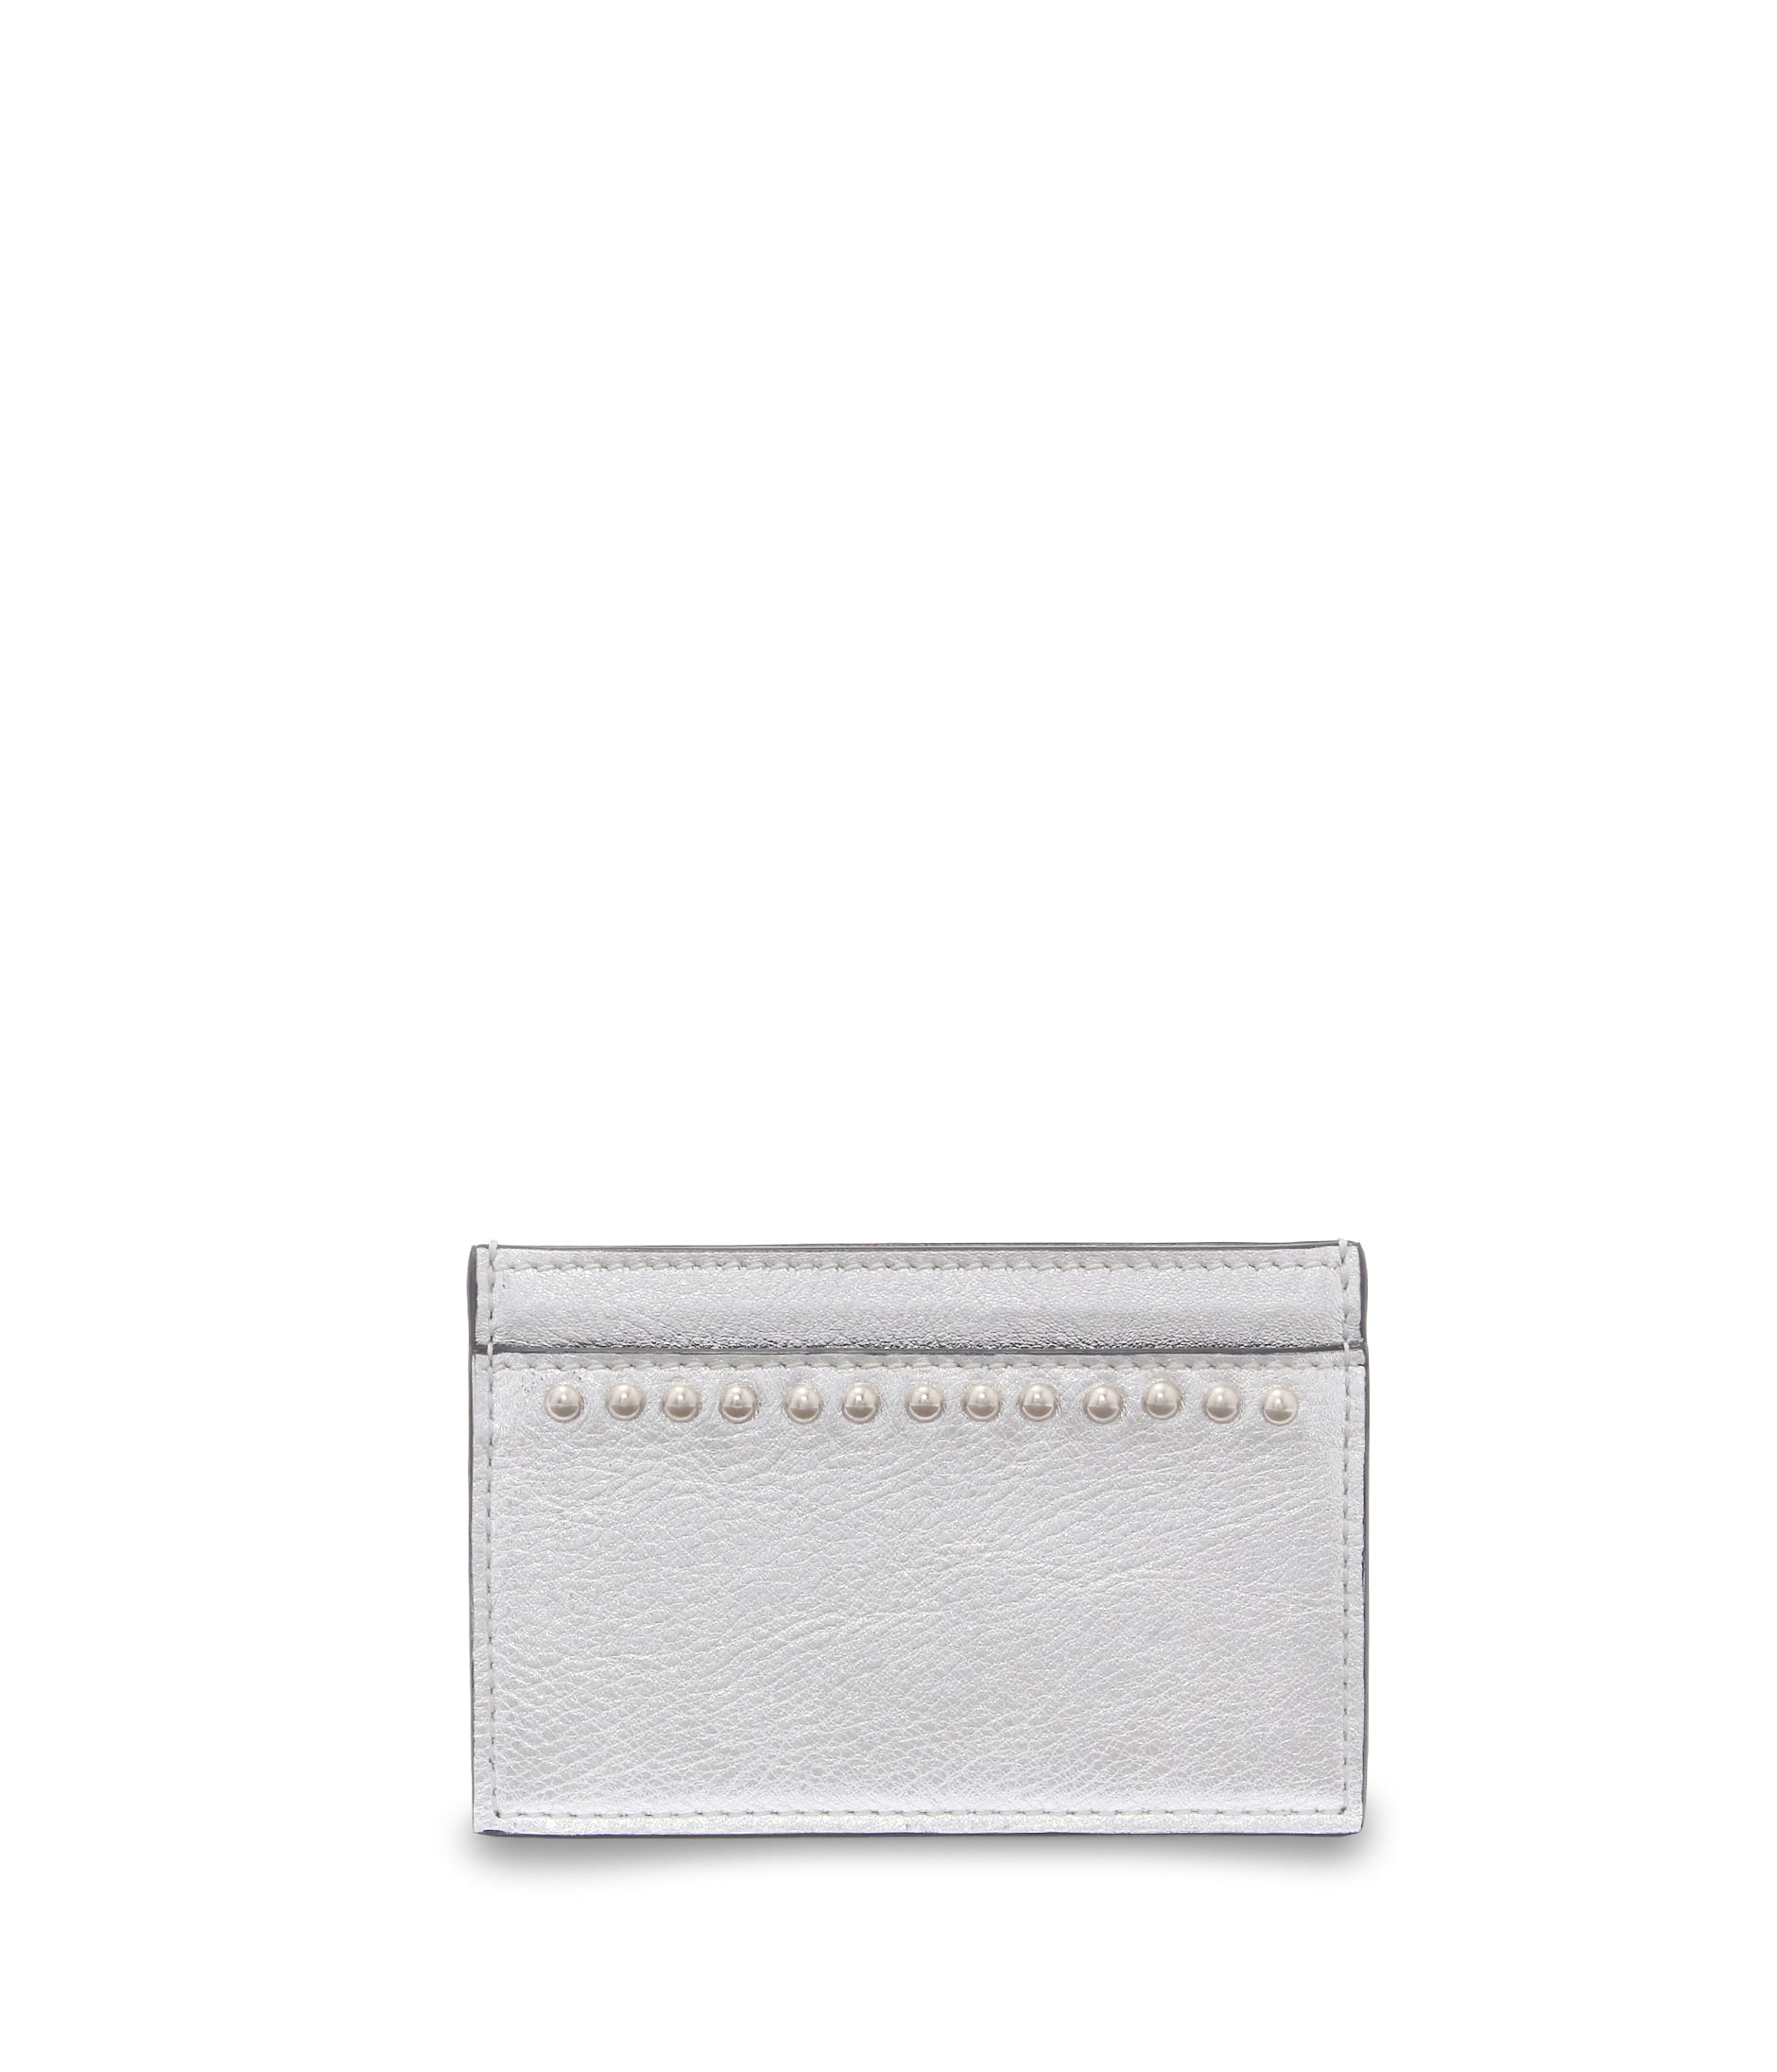 FLAT CREDIT CARD CASE WITH STUDS 詳細画像 SILVER 1